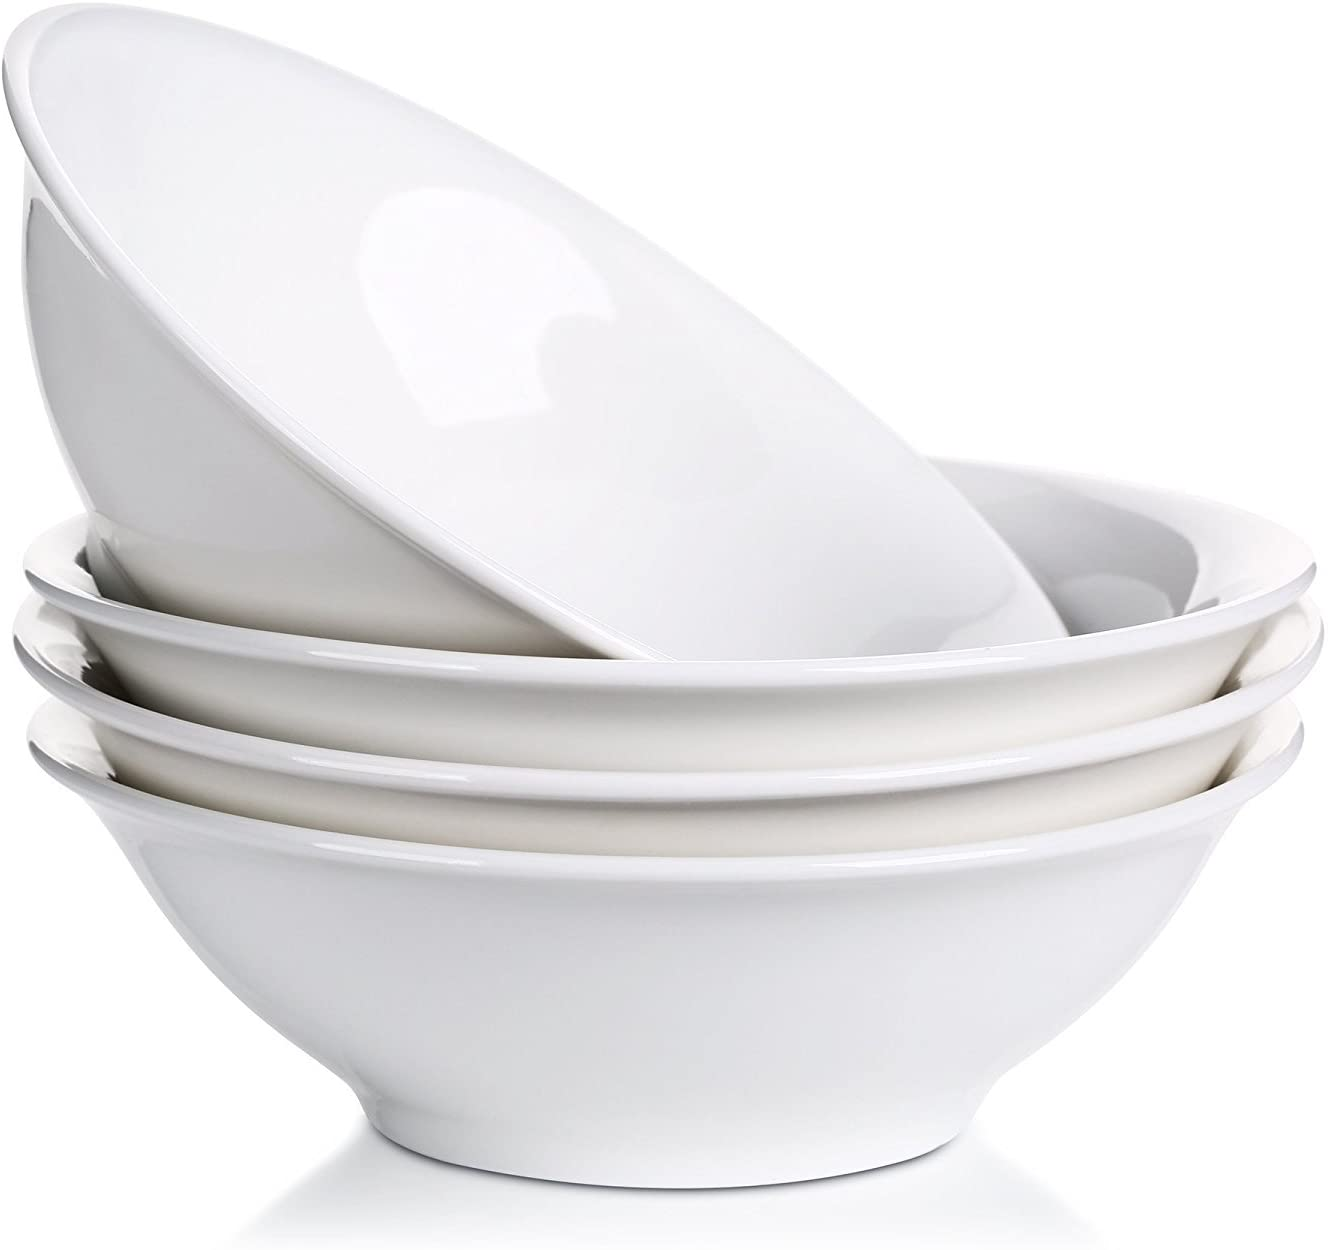 LIFVER Porcelain Salad Bowls, Set Of 4